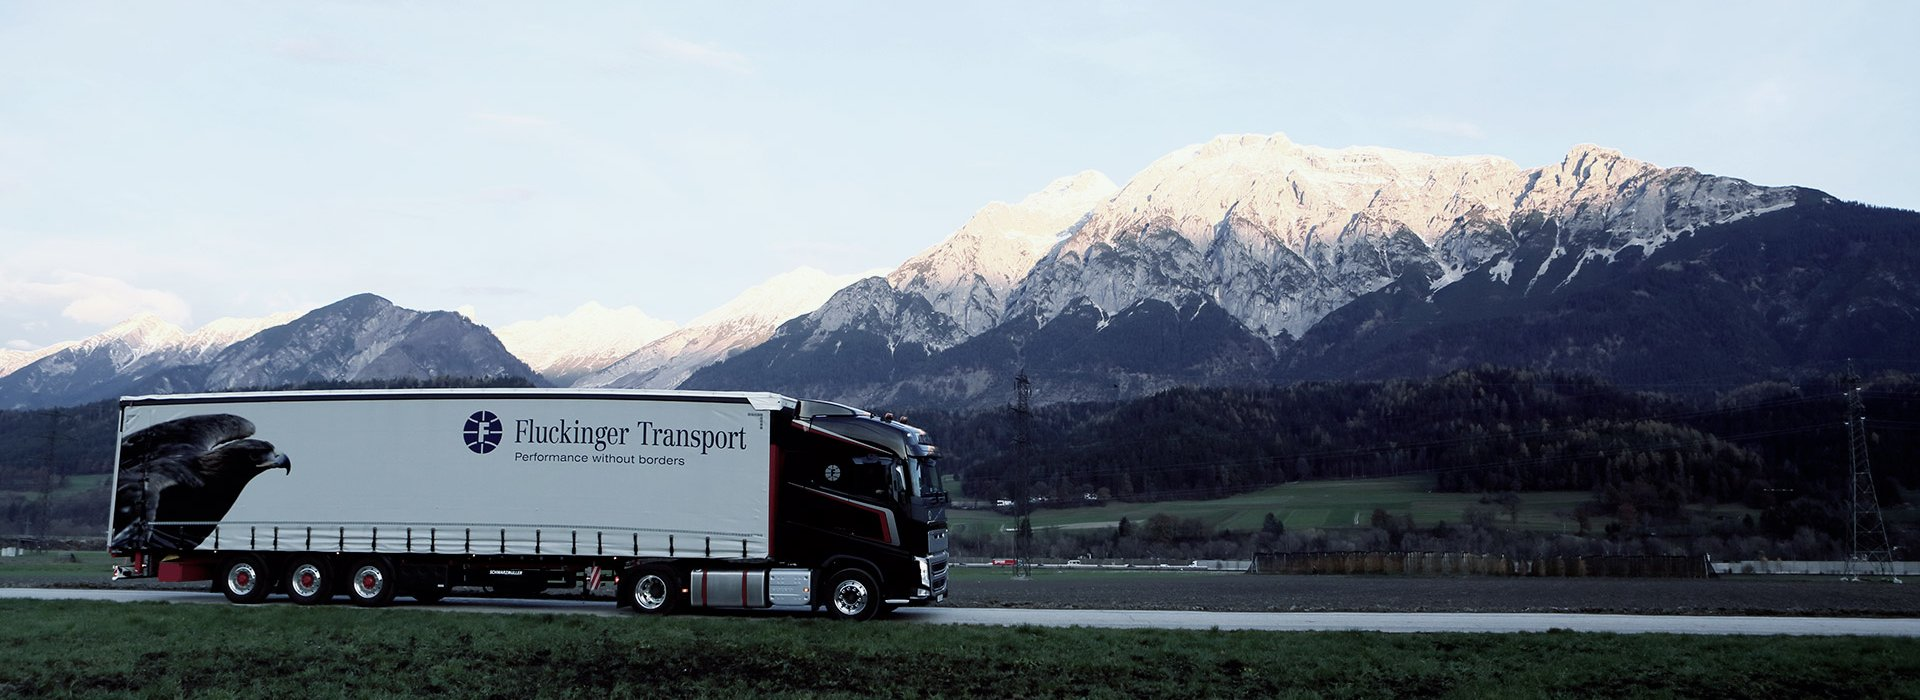 Fluckinger Transport truck